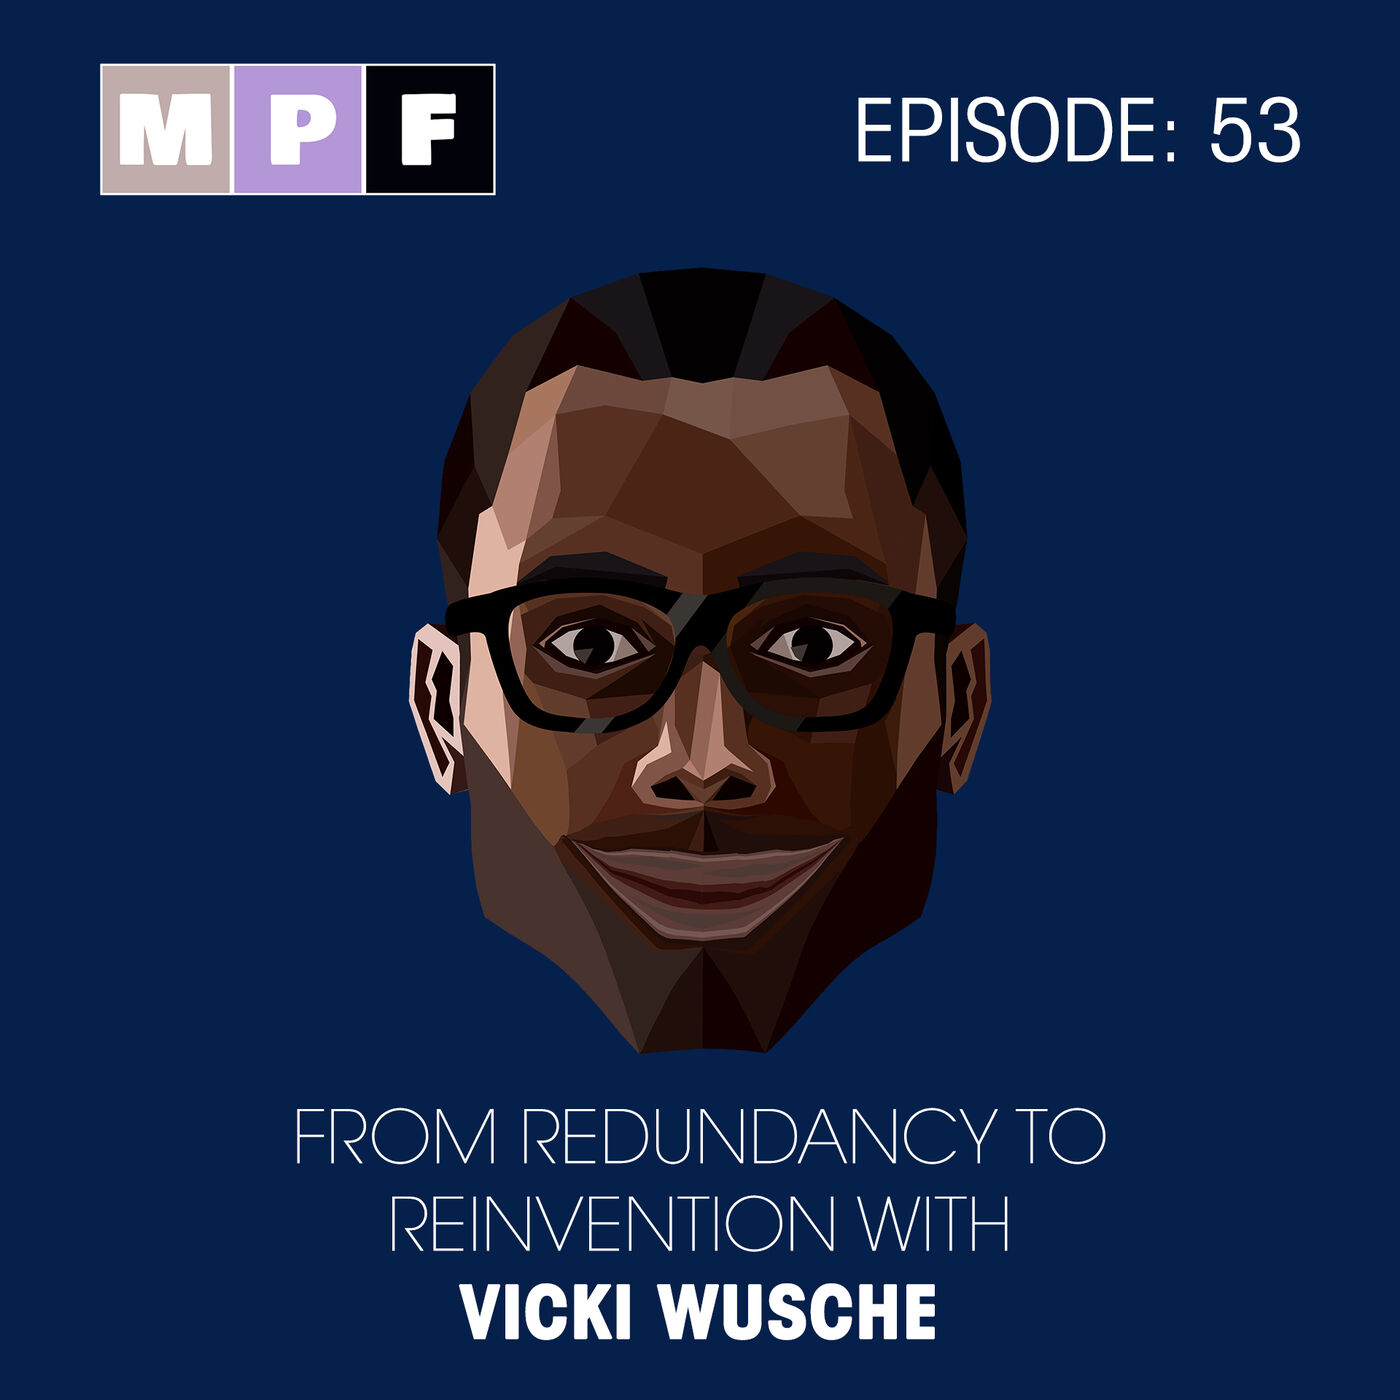 From Redundancy To Reinvention Vicki Wusche